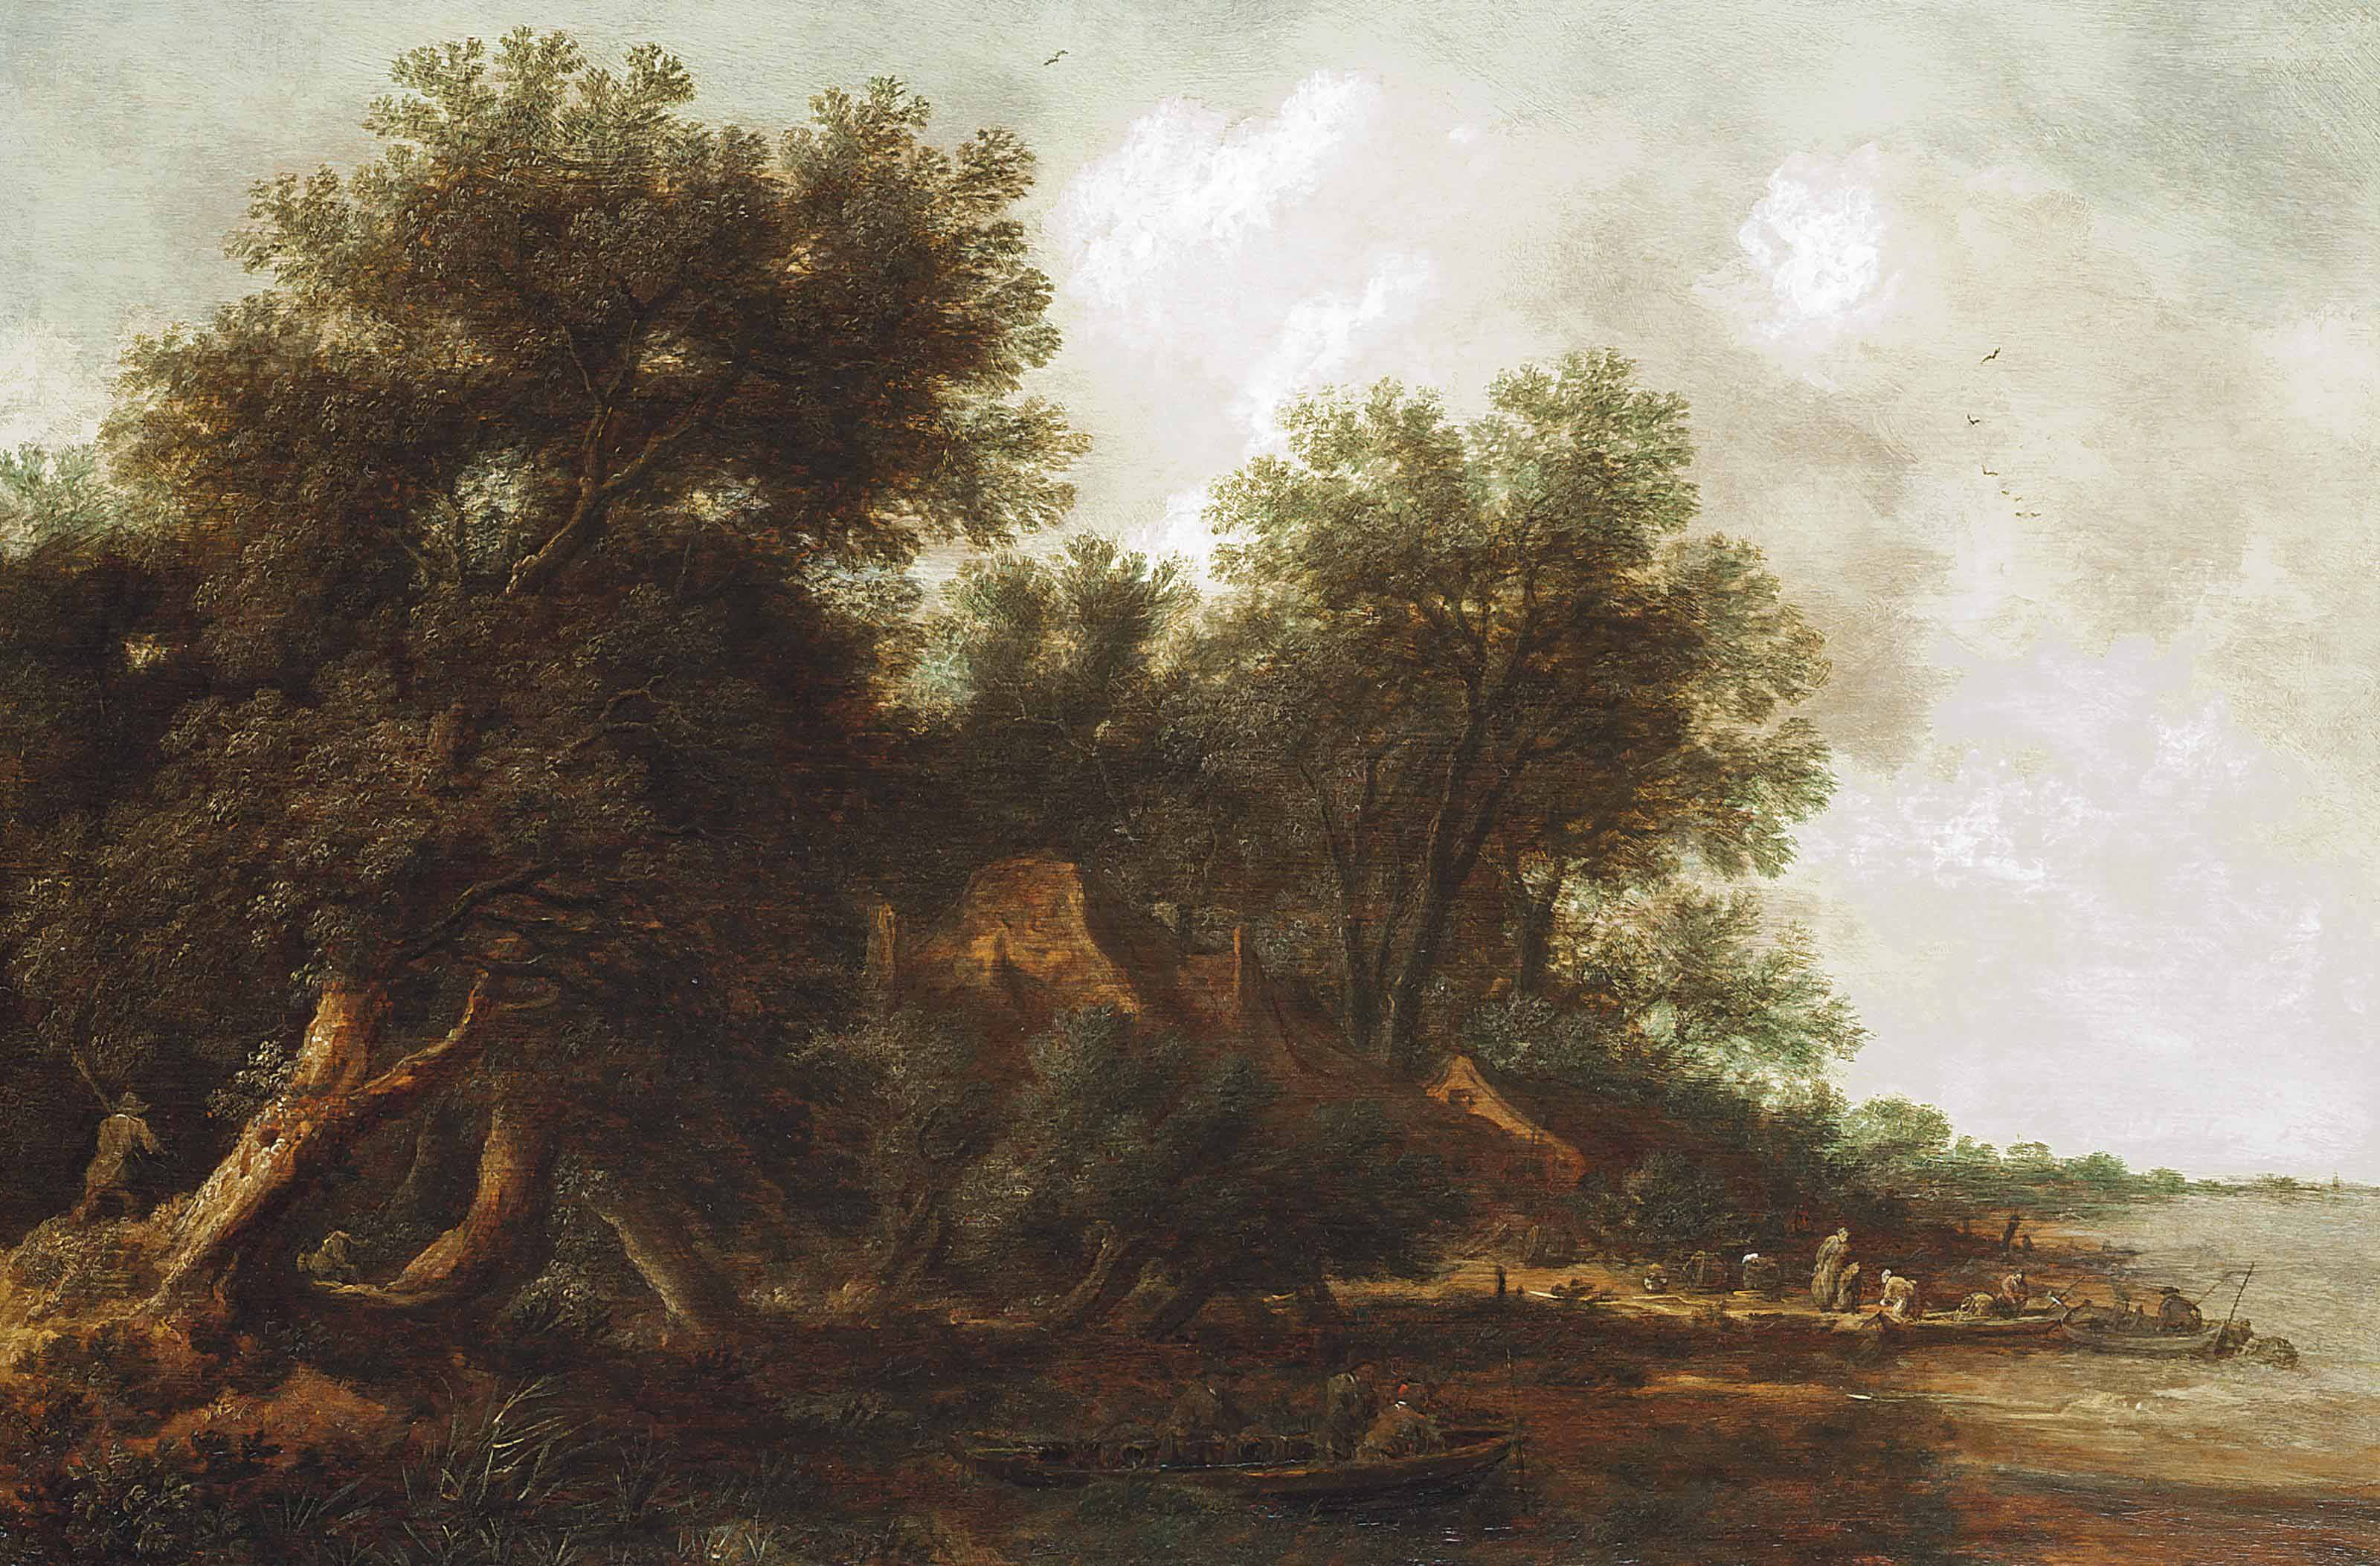 A wooded river landscape with fishermen on boats and other figures